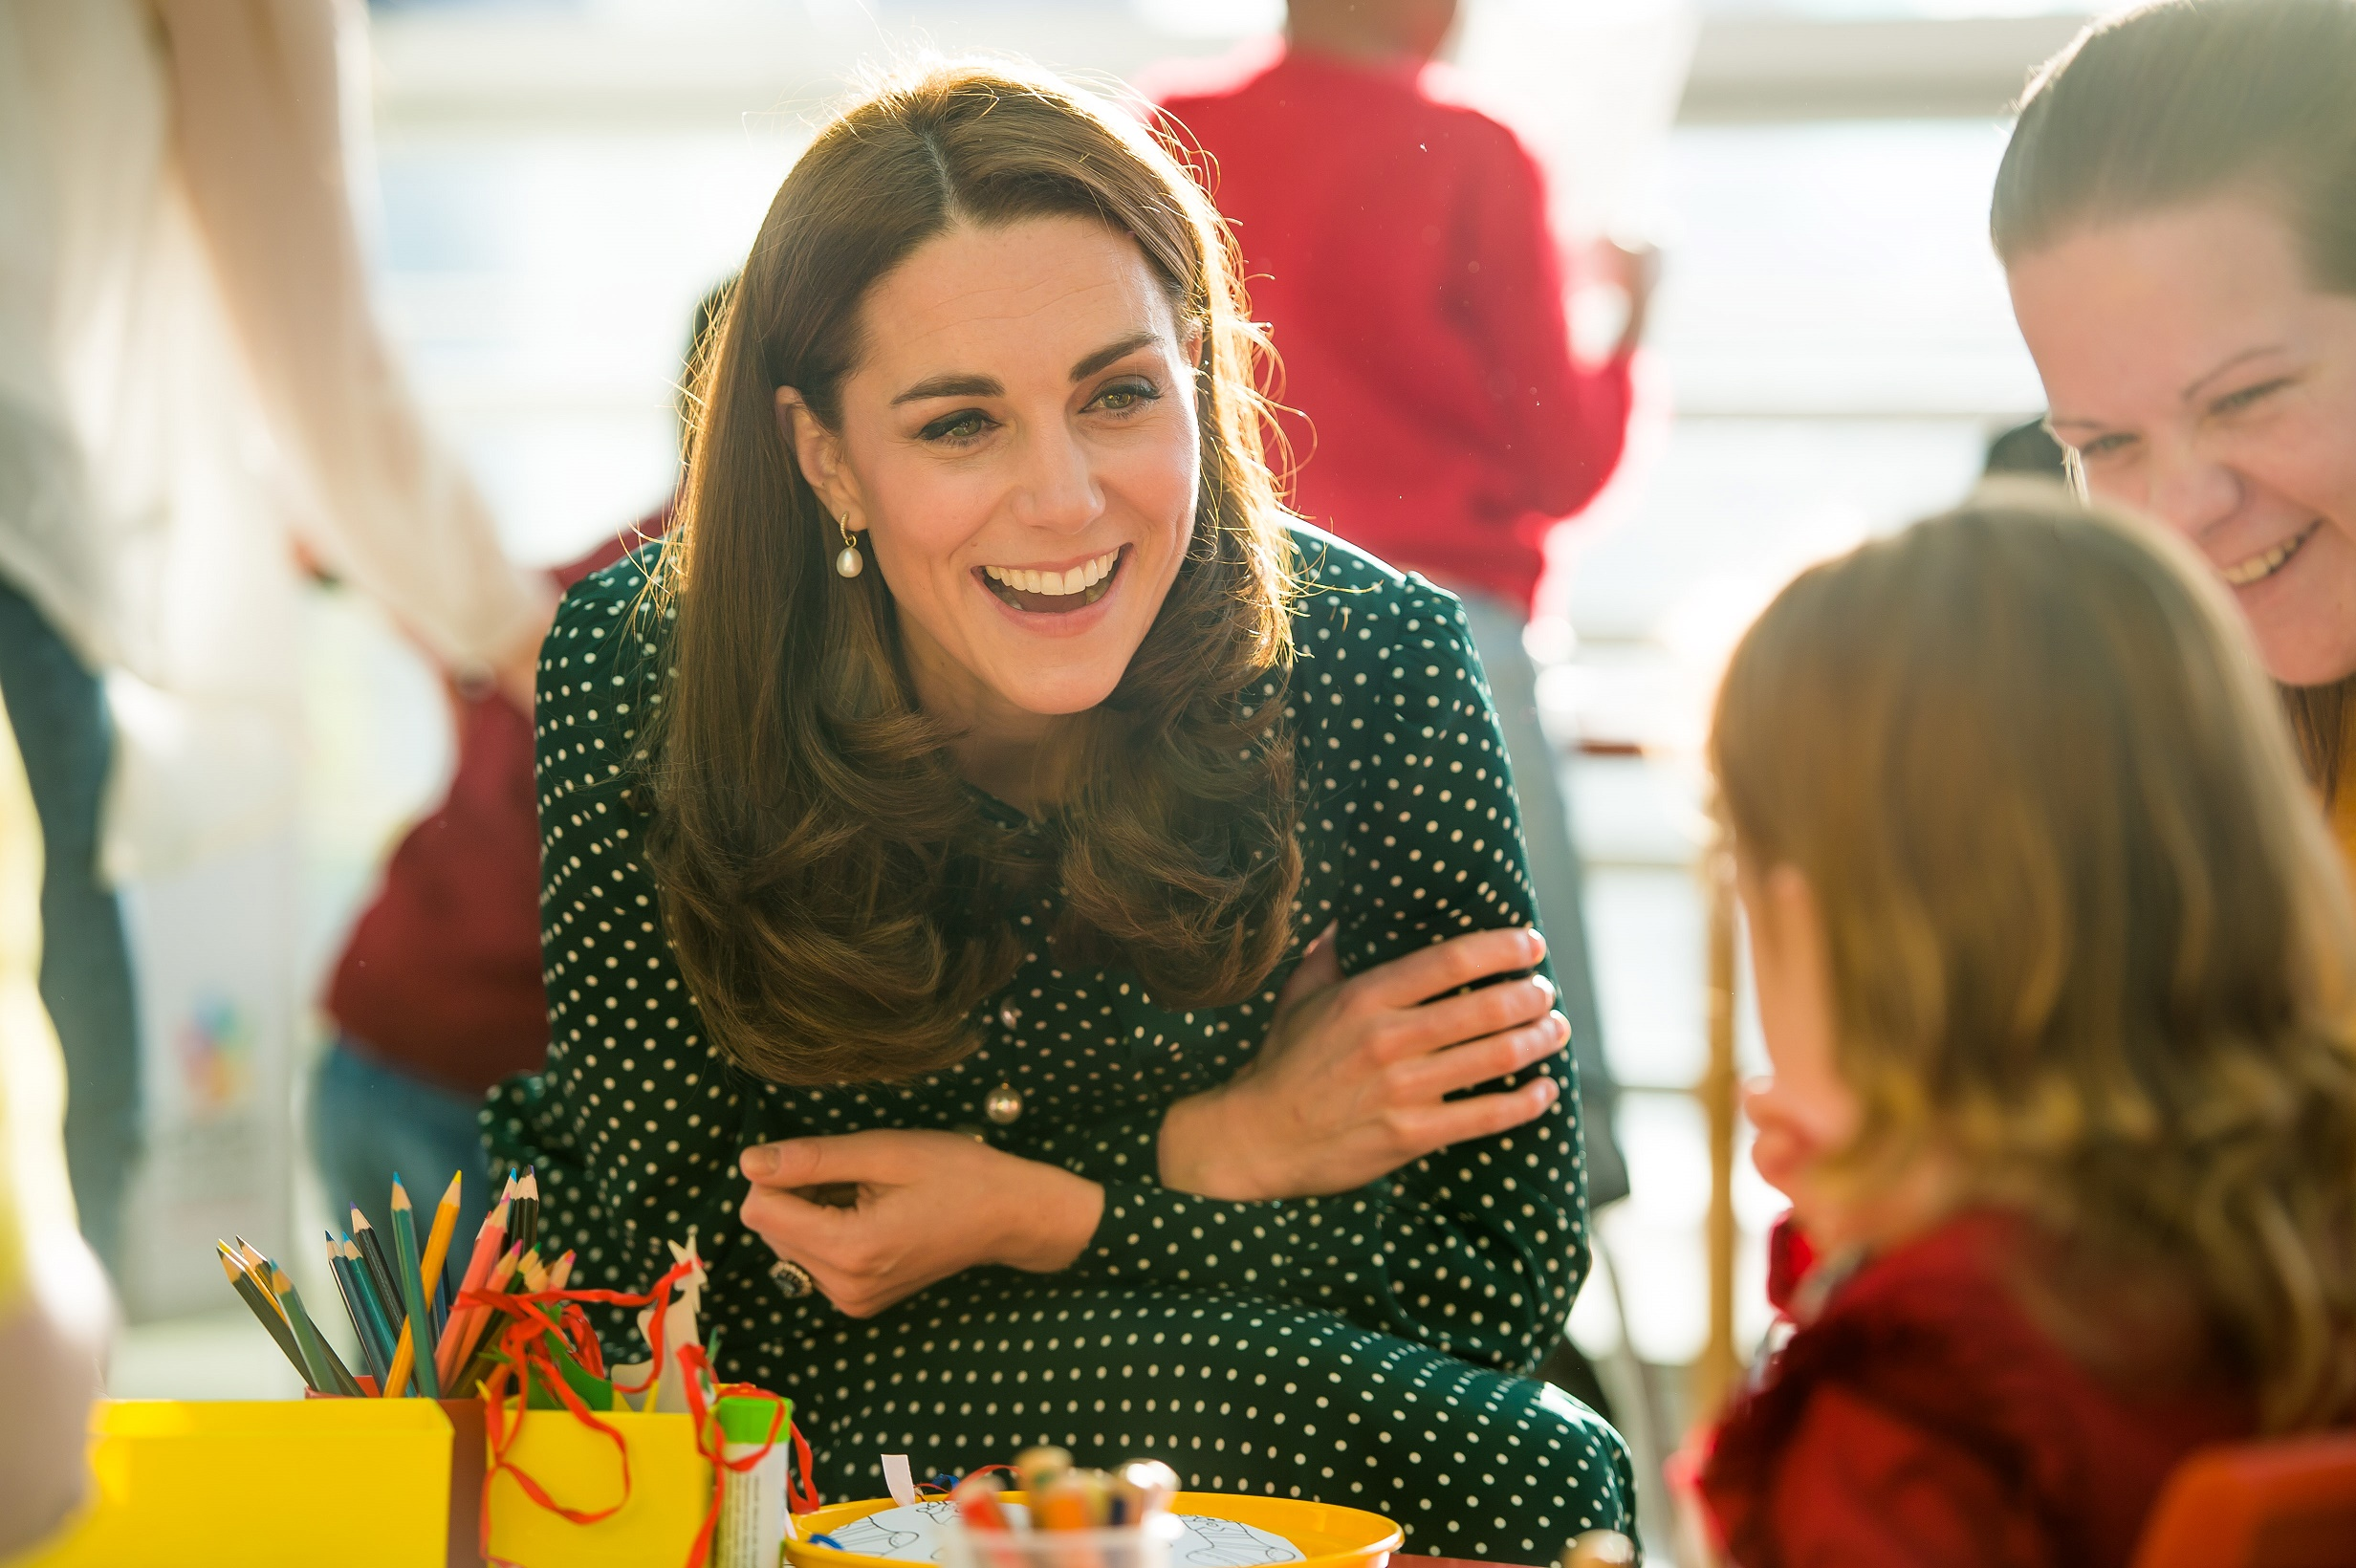 Duchess of Cambridge to be patron of Evelina Children's Hospital